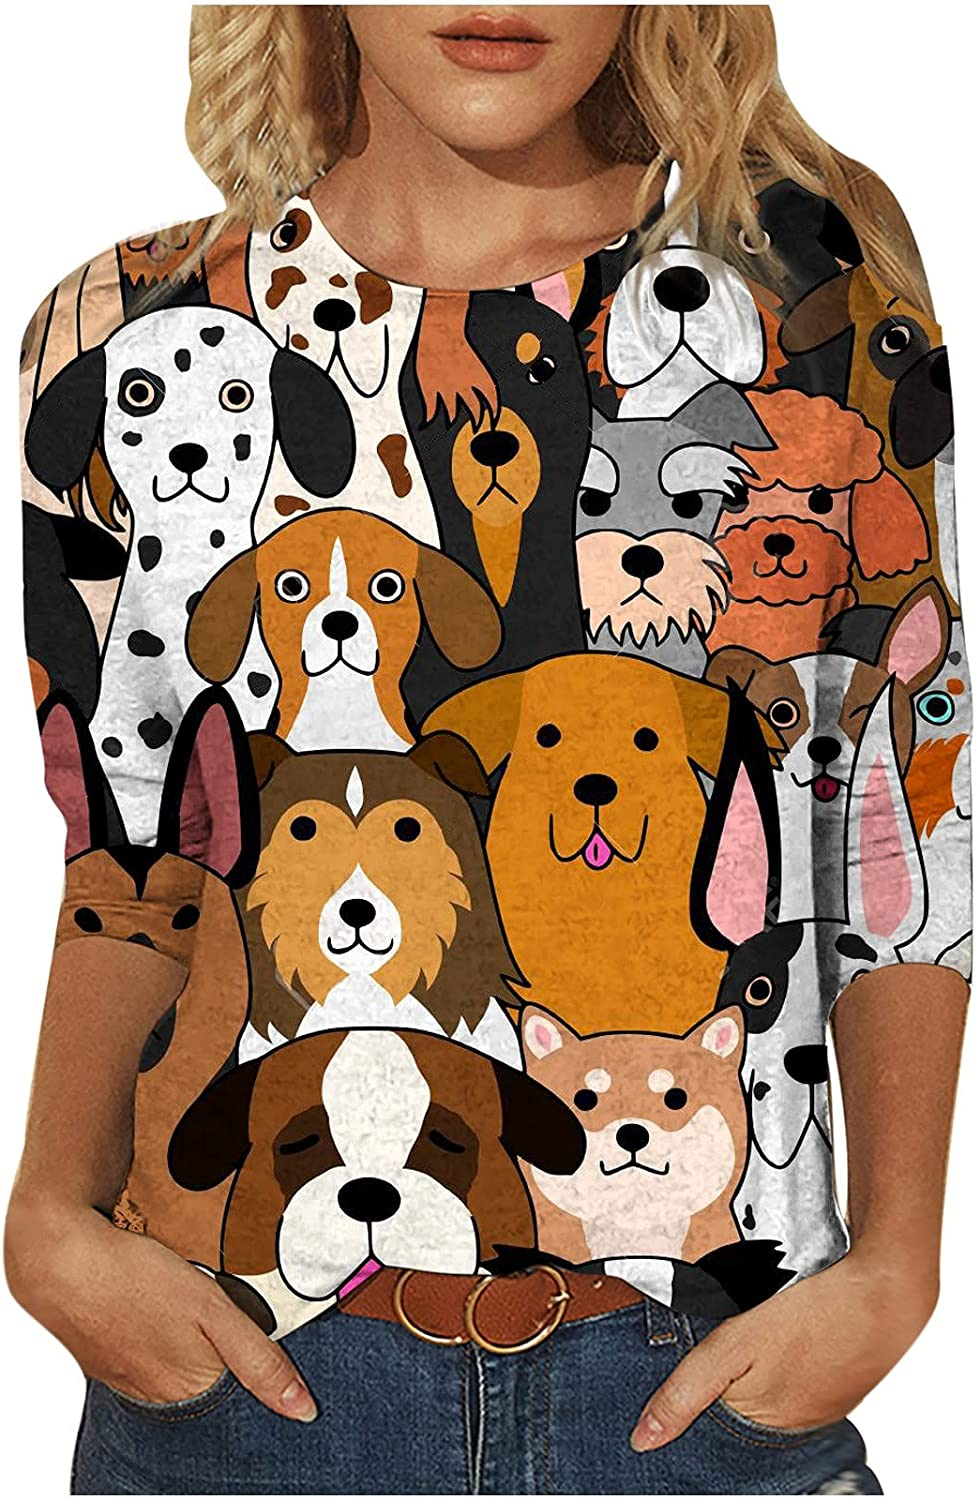 Women Tops Cute Animals Graphic Tees 3/4 Sleeve Blouse Casual Comfy Pullover Fall Trendy Jumper Tunic for Jeans